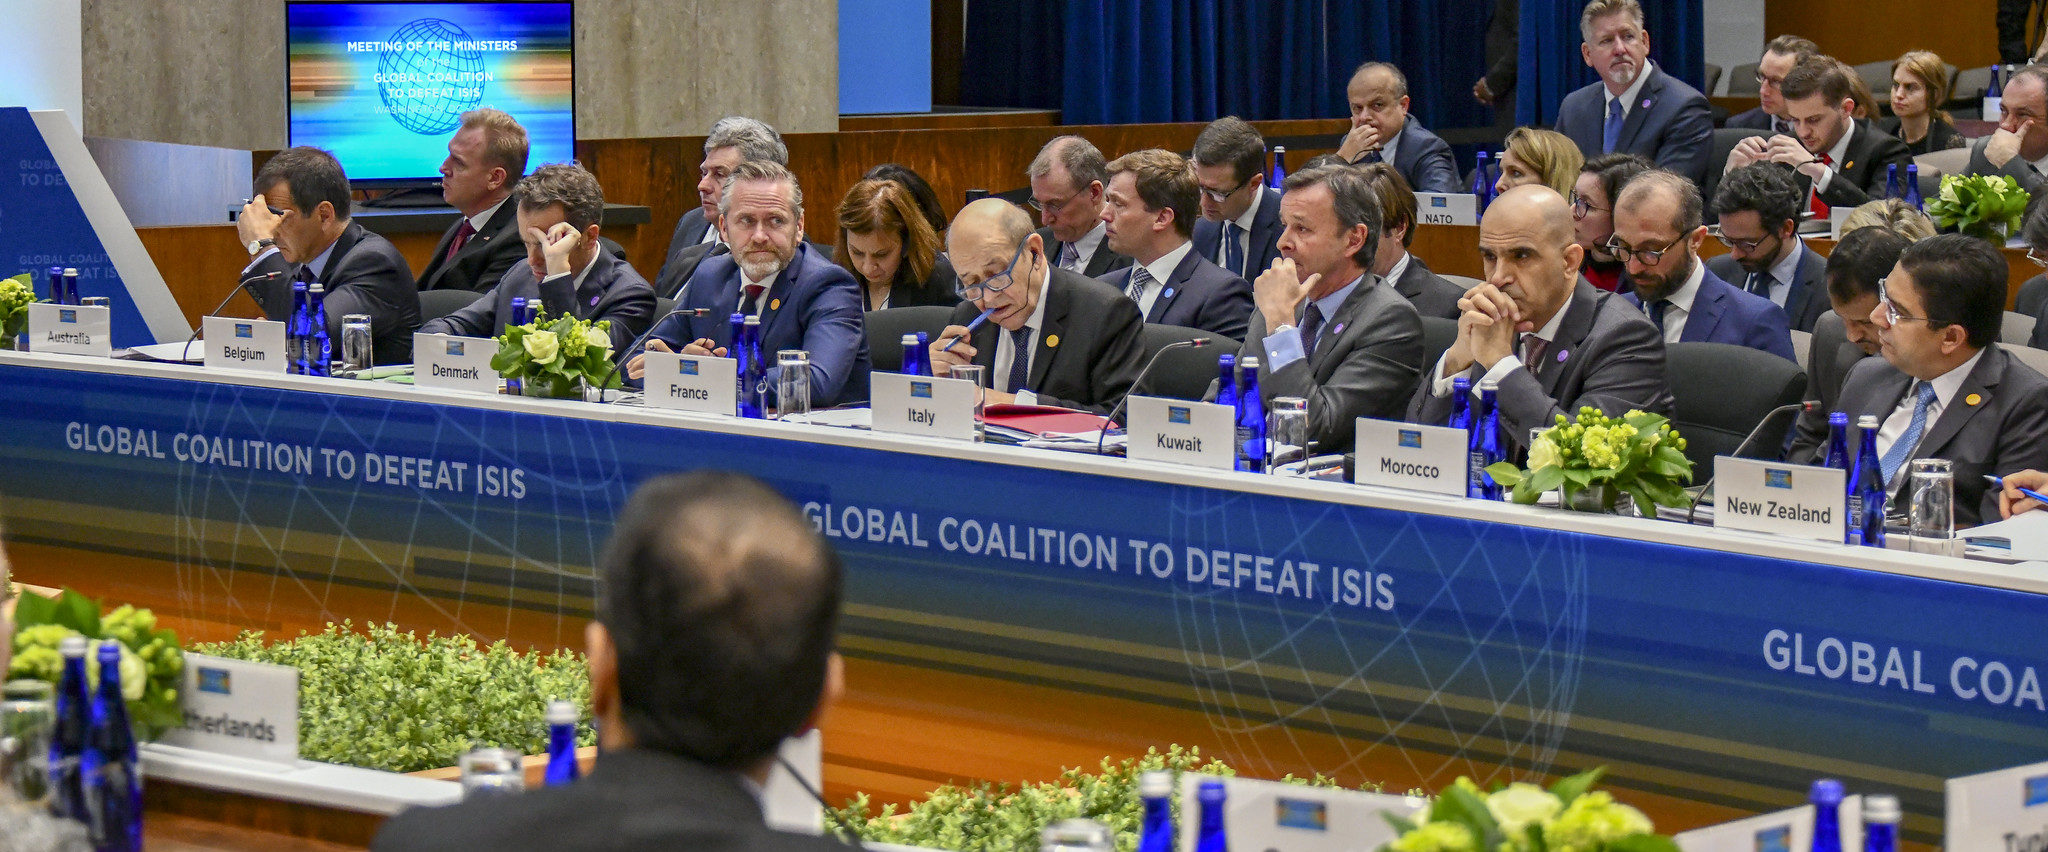 Foreign Ministers Listen on as Secretary Pompeo Delivers Opening Remarks